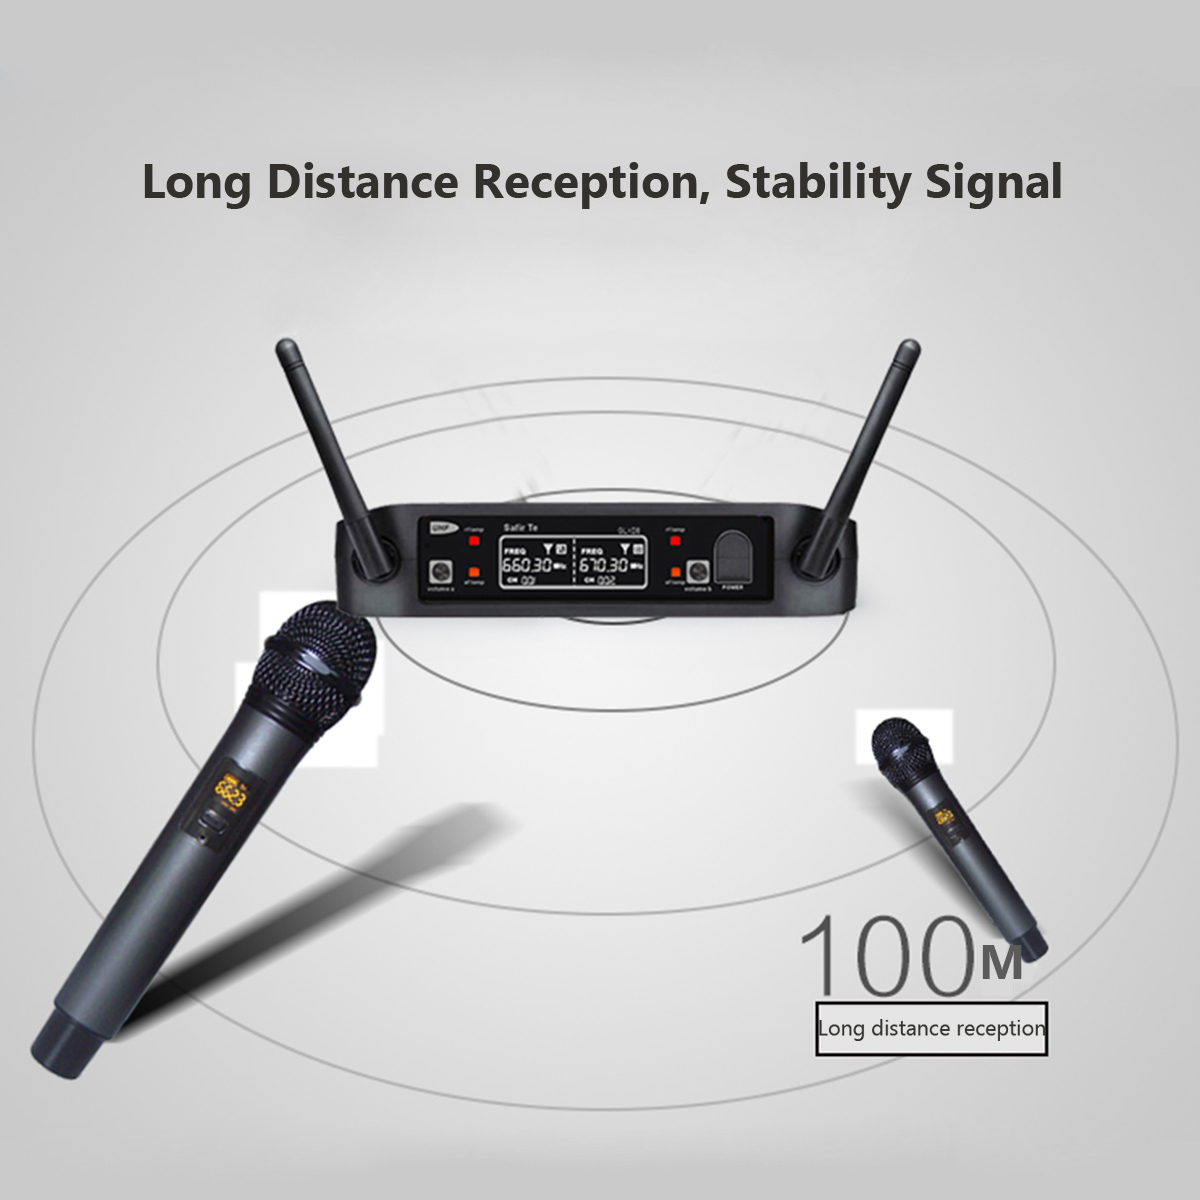 GLXD8-B Anti-wrestling LCD Wireless Handheld Microphone Speaker US/AU Plug for TV Cell Phone PC